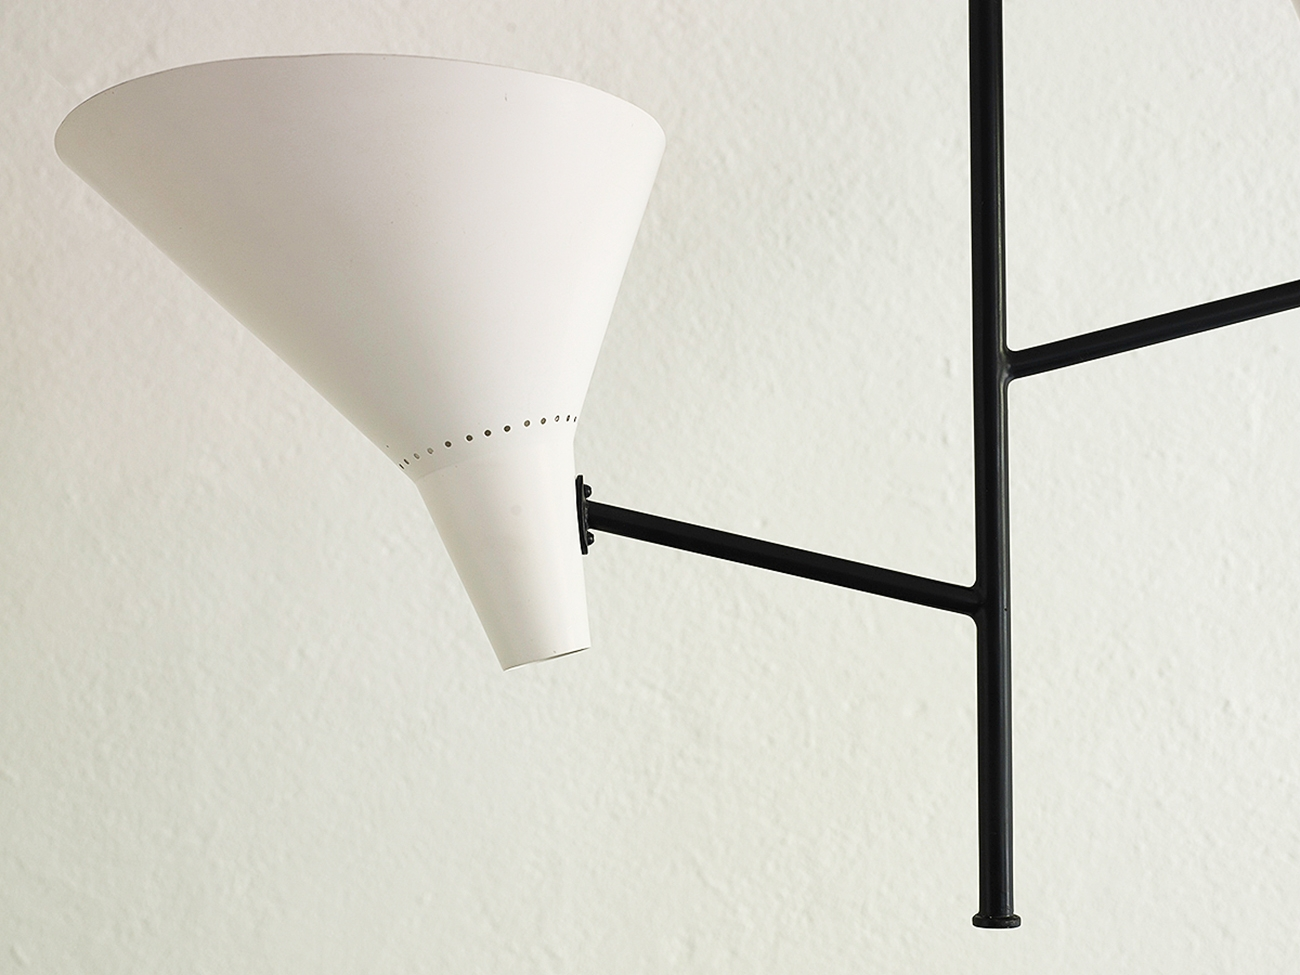 ceiling-lamp-by-prof-moor-for-bag-turgi-image-01